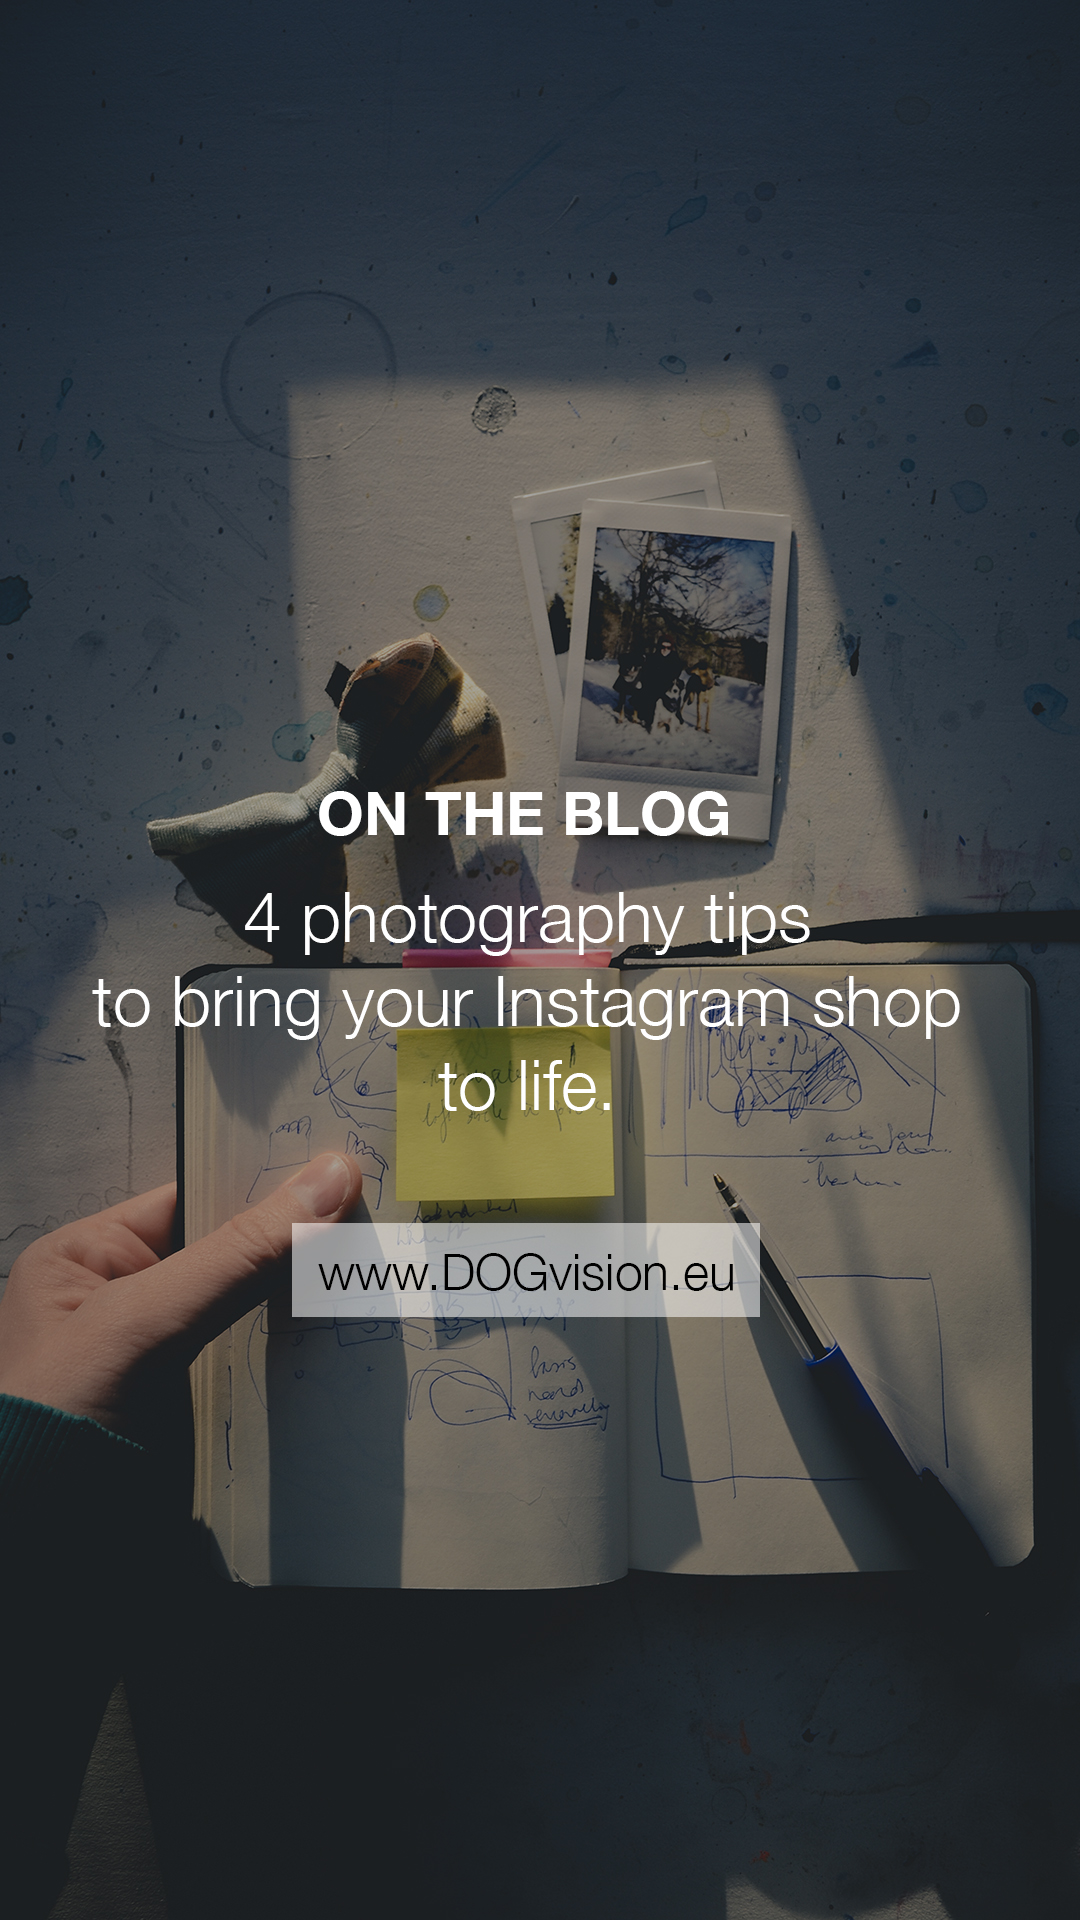 4 photography tips to bring your Instagram shop to life, blog on www.DOGvision.eu